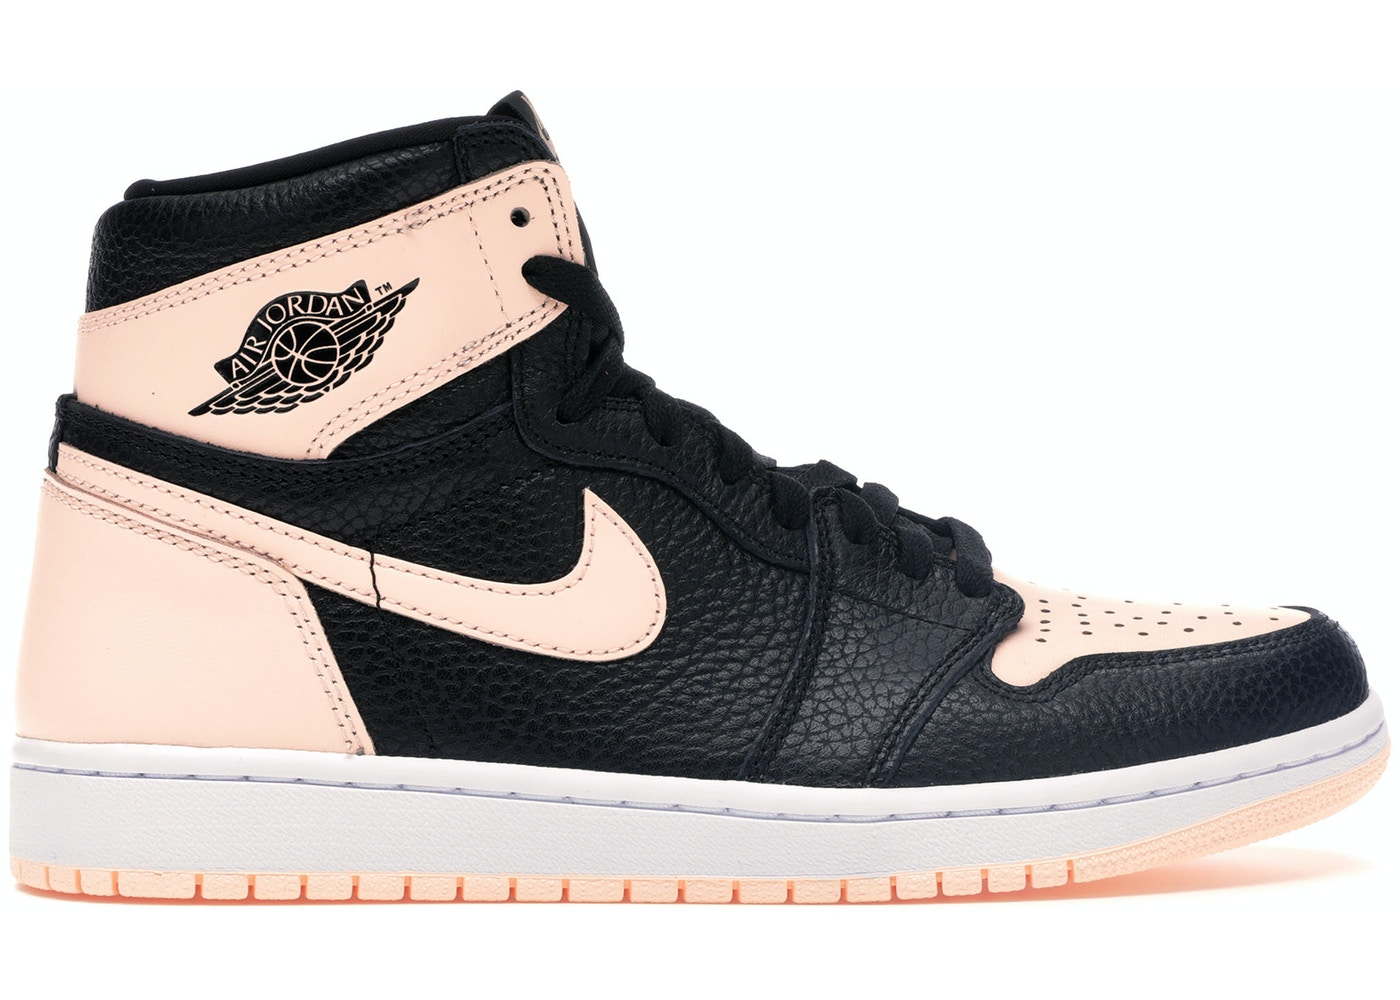 9ac31239cb73 Jordan 1 Retro High Black Crimson Tint